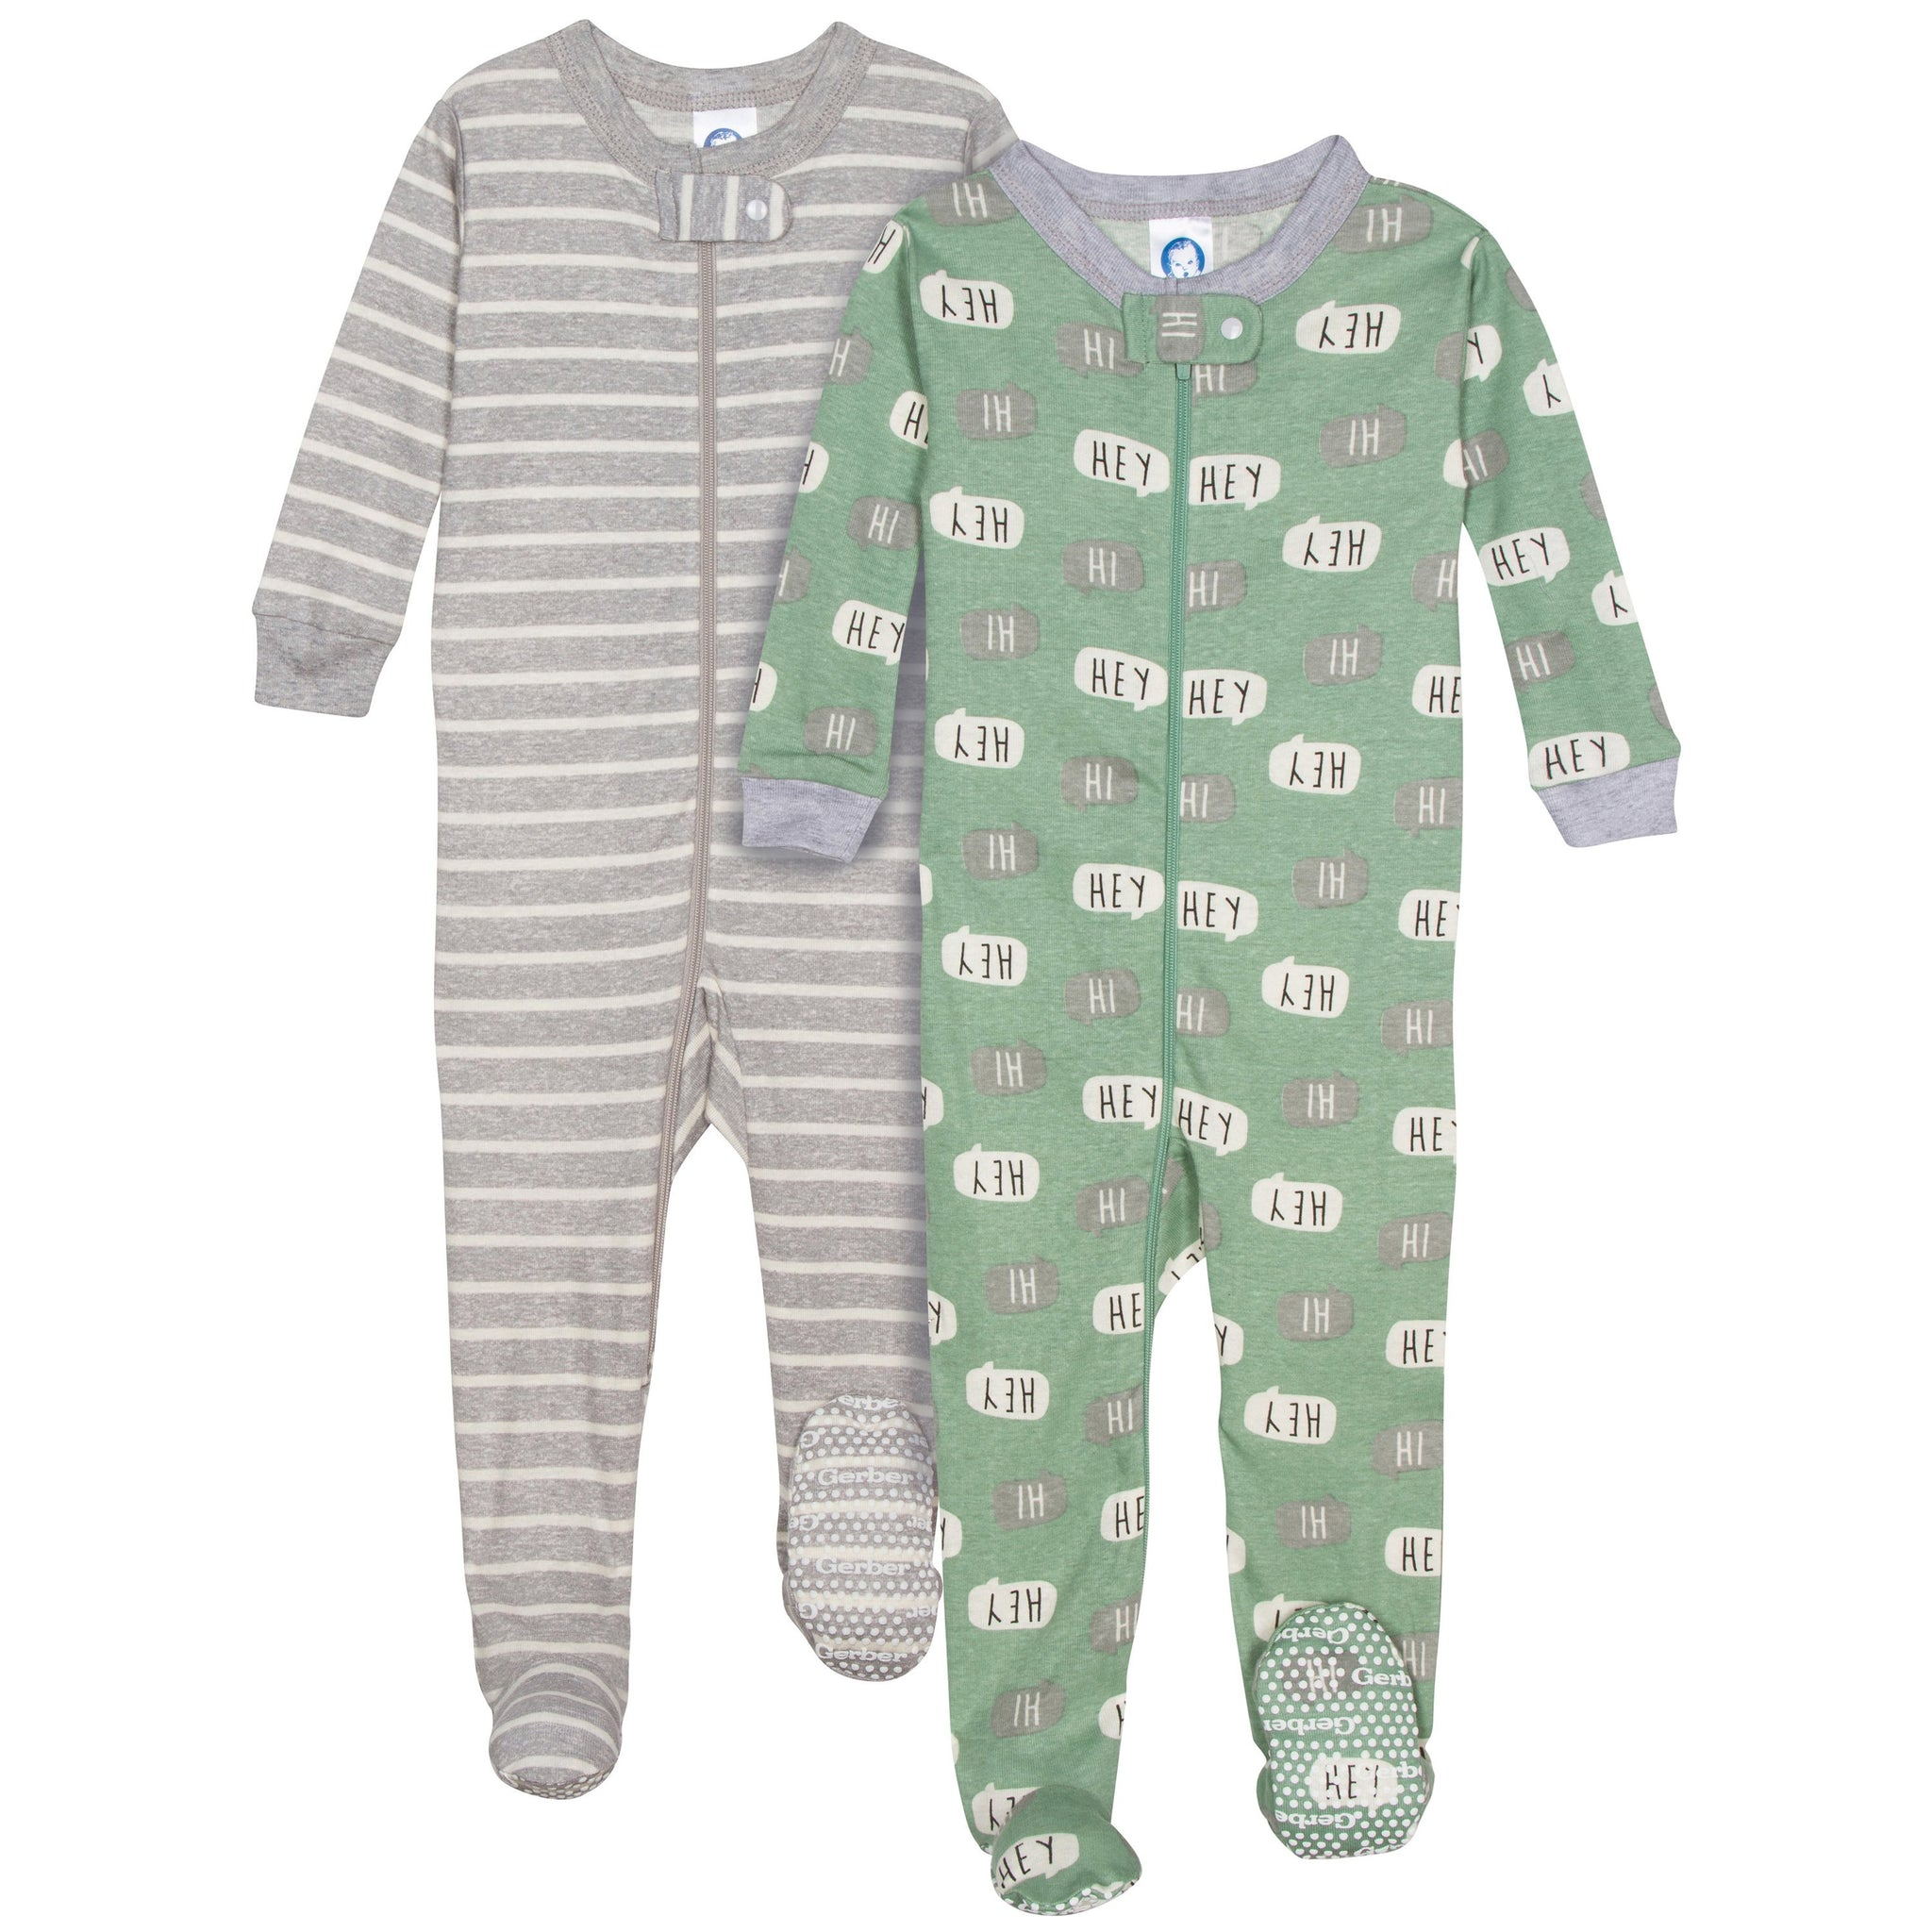 2-pack Boys Organic Footed Unionsuit - Hey/Stripes